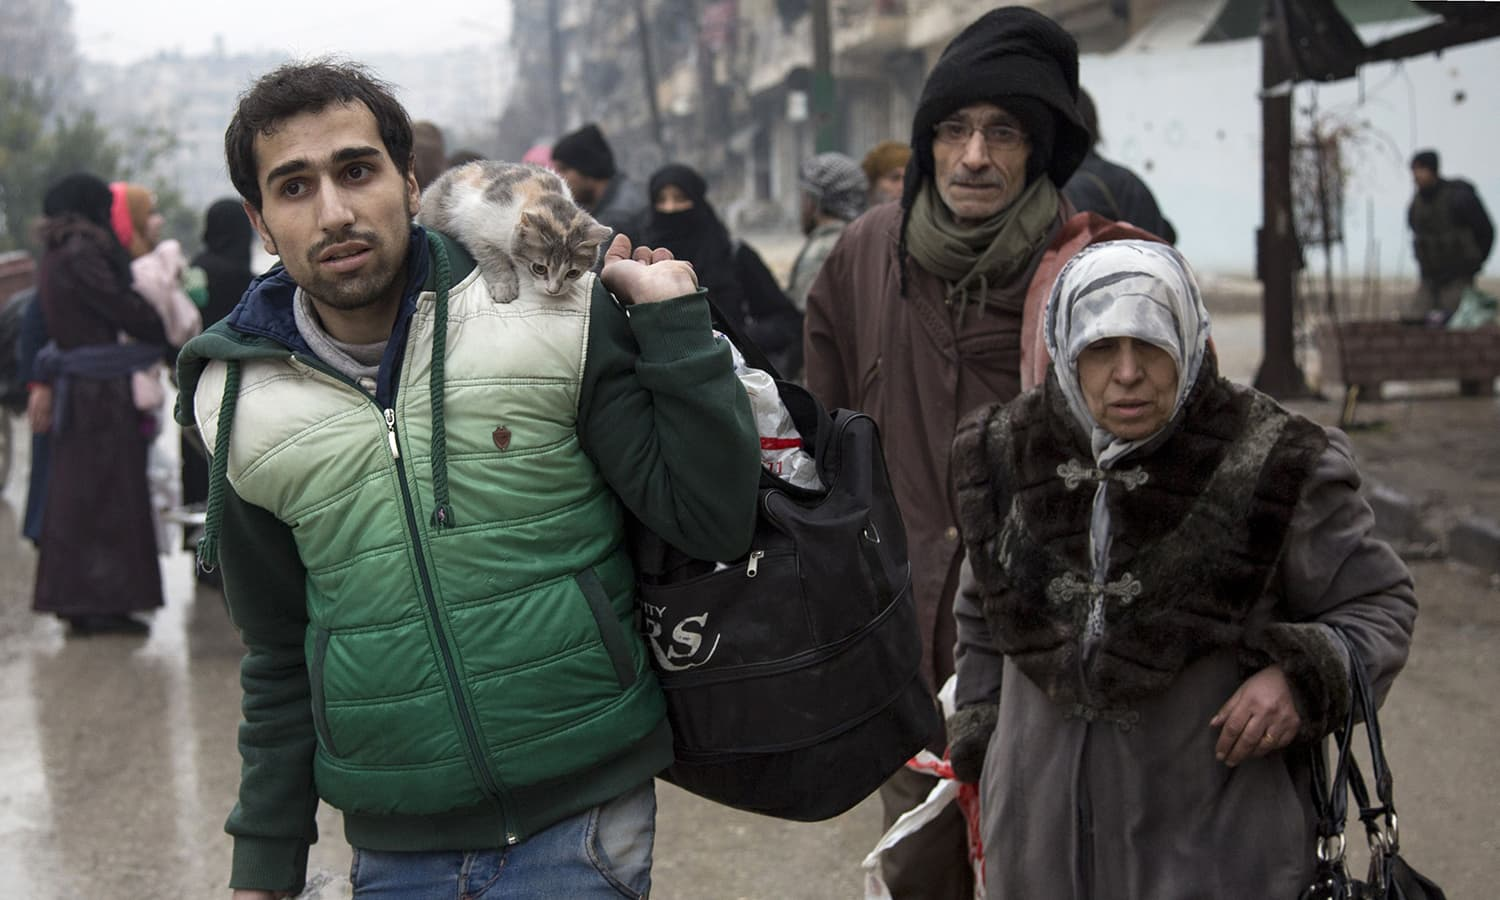 Syrians leave a rebel-held area of Aleppo towards the government-held side. ─AFP